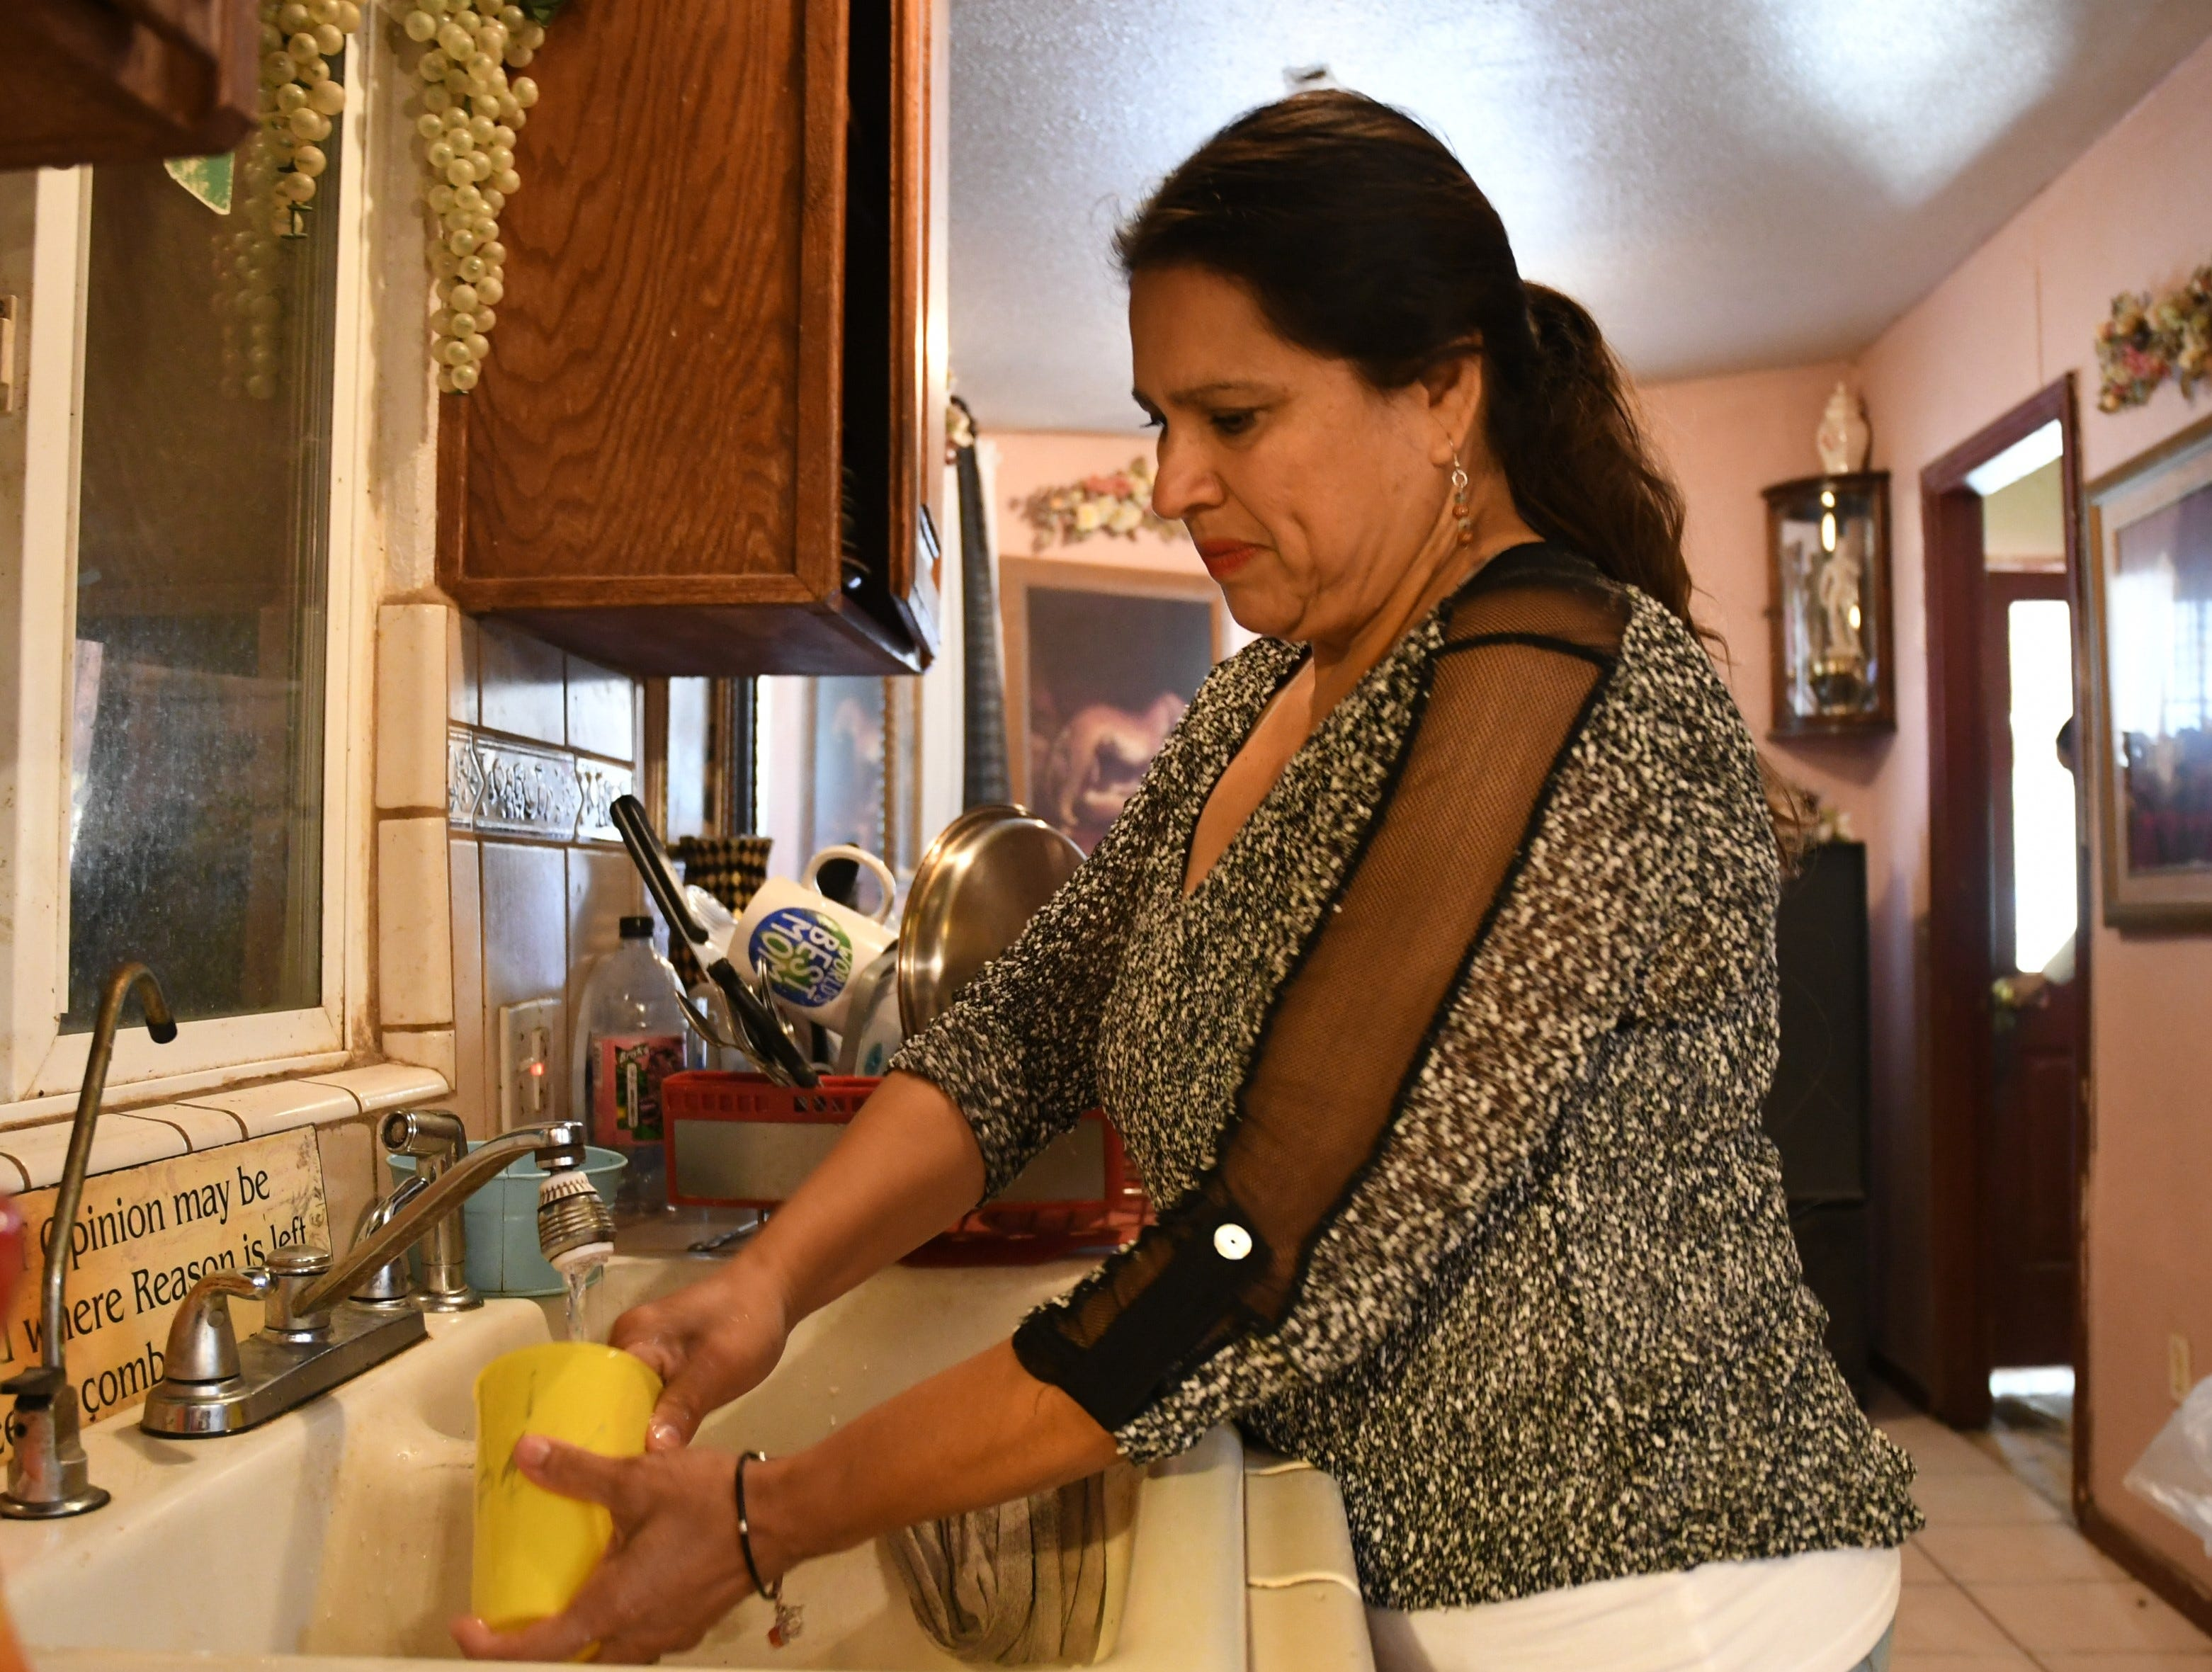 Toxic taps abound in rural Tulare County, failed water bond brings no relief